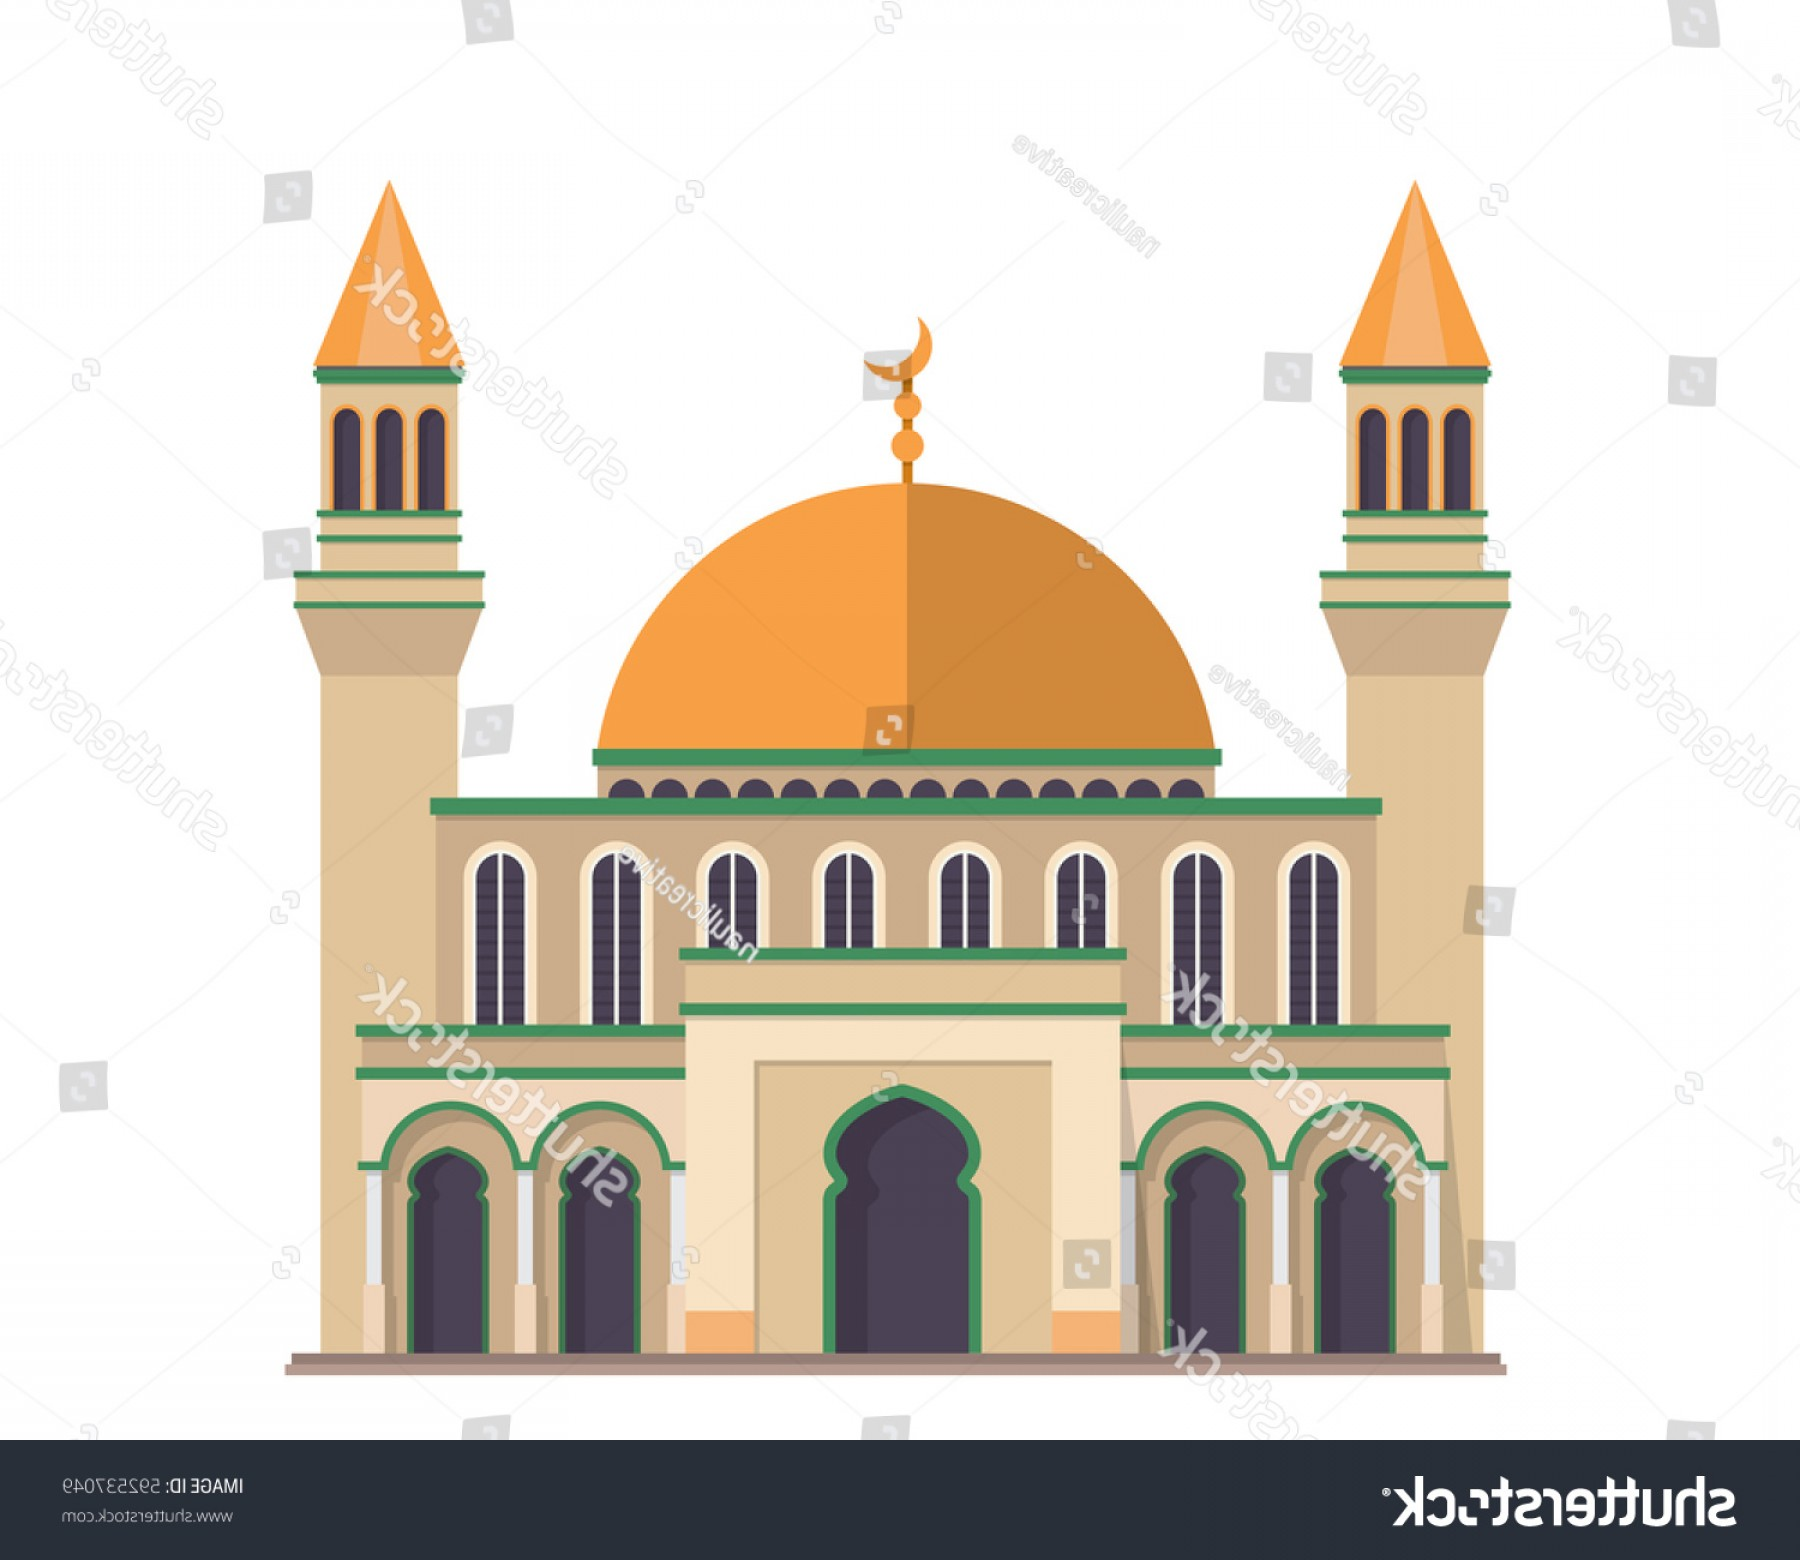 Mosque Vector Map: Modern Flat Elegant Islamic Mosque Building